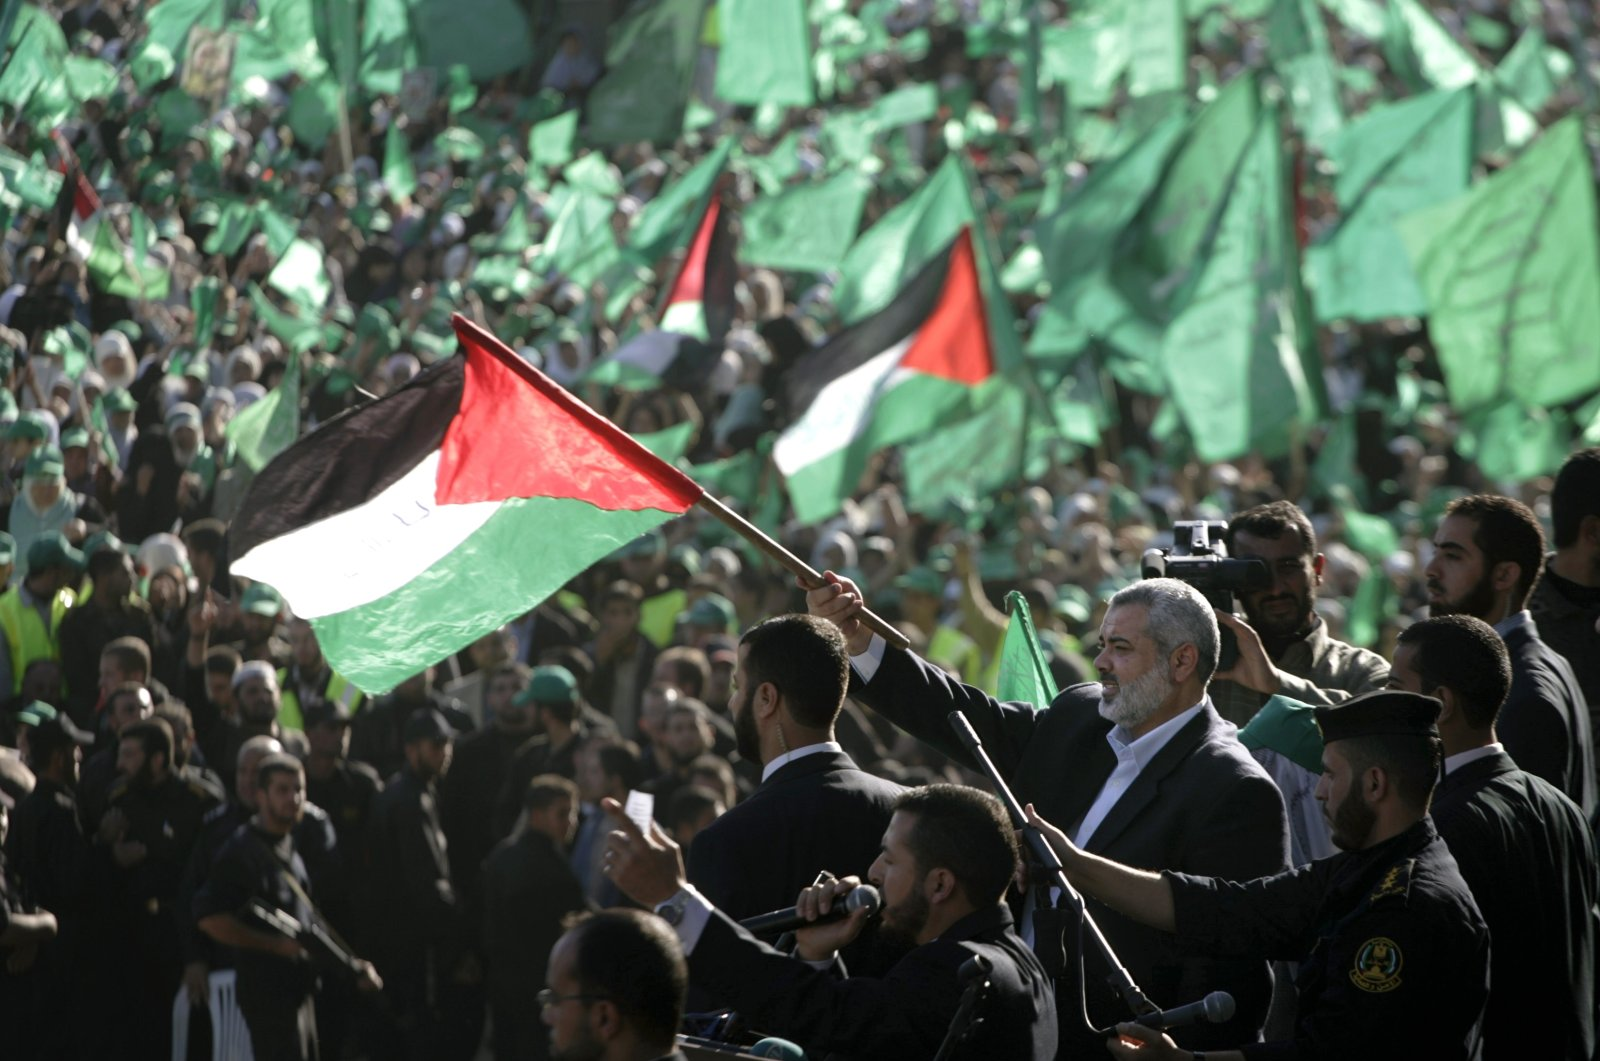 Chief of Hamas political bureau Ismail Haniyeh waves a Palestinian flag during a celebration of the 20th anniversary of the foundation of Hamas in this undated photo. (AP Photo)